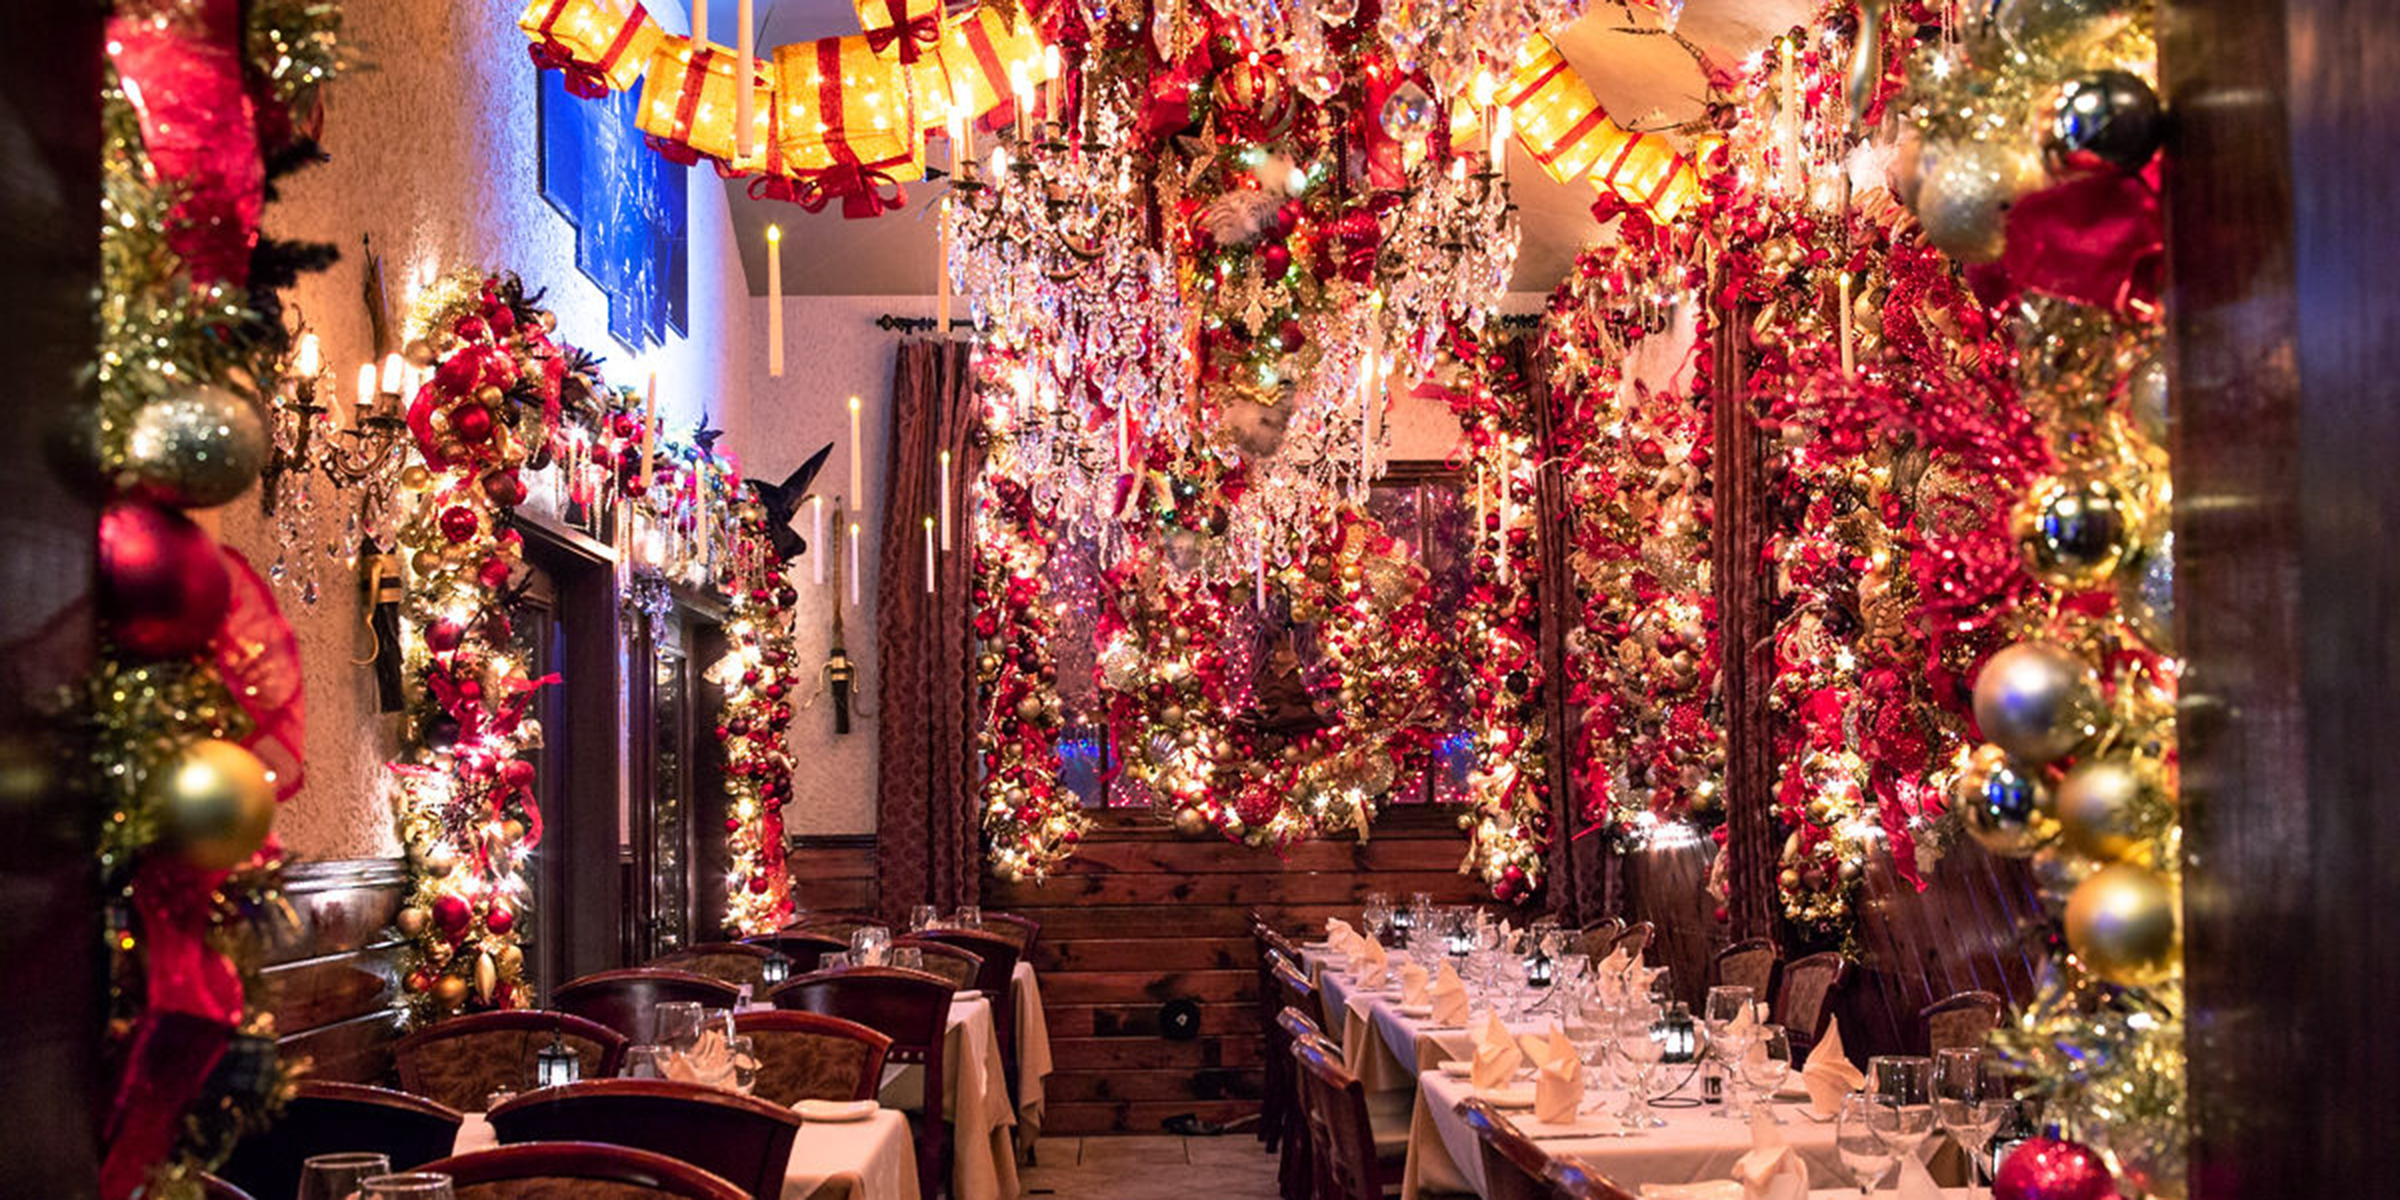 Cava Restaurant\'s holiday Christmas decorations are absolutely insane